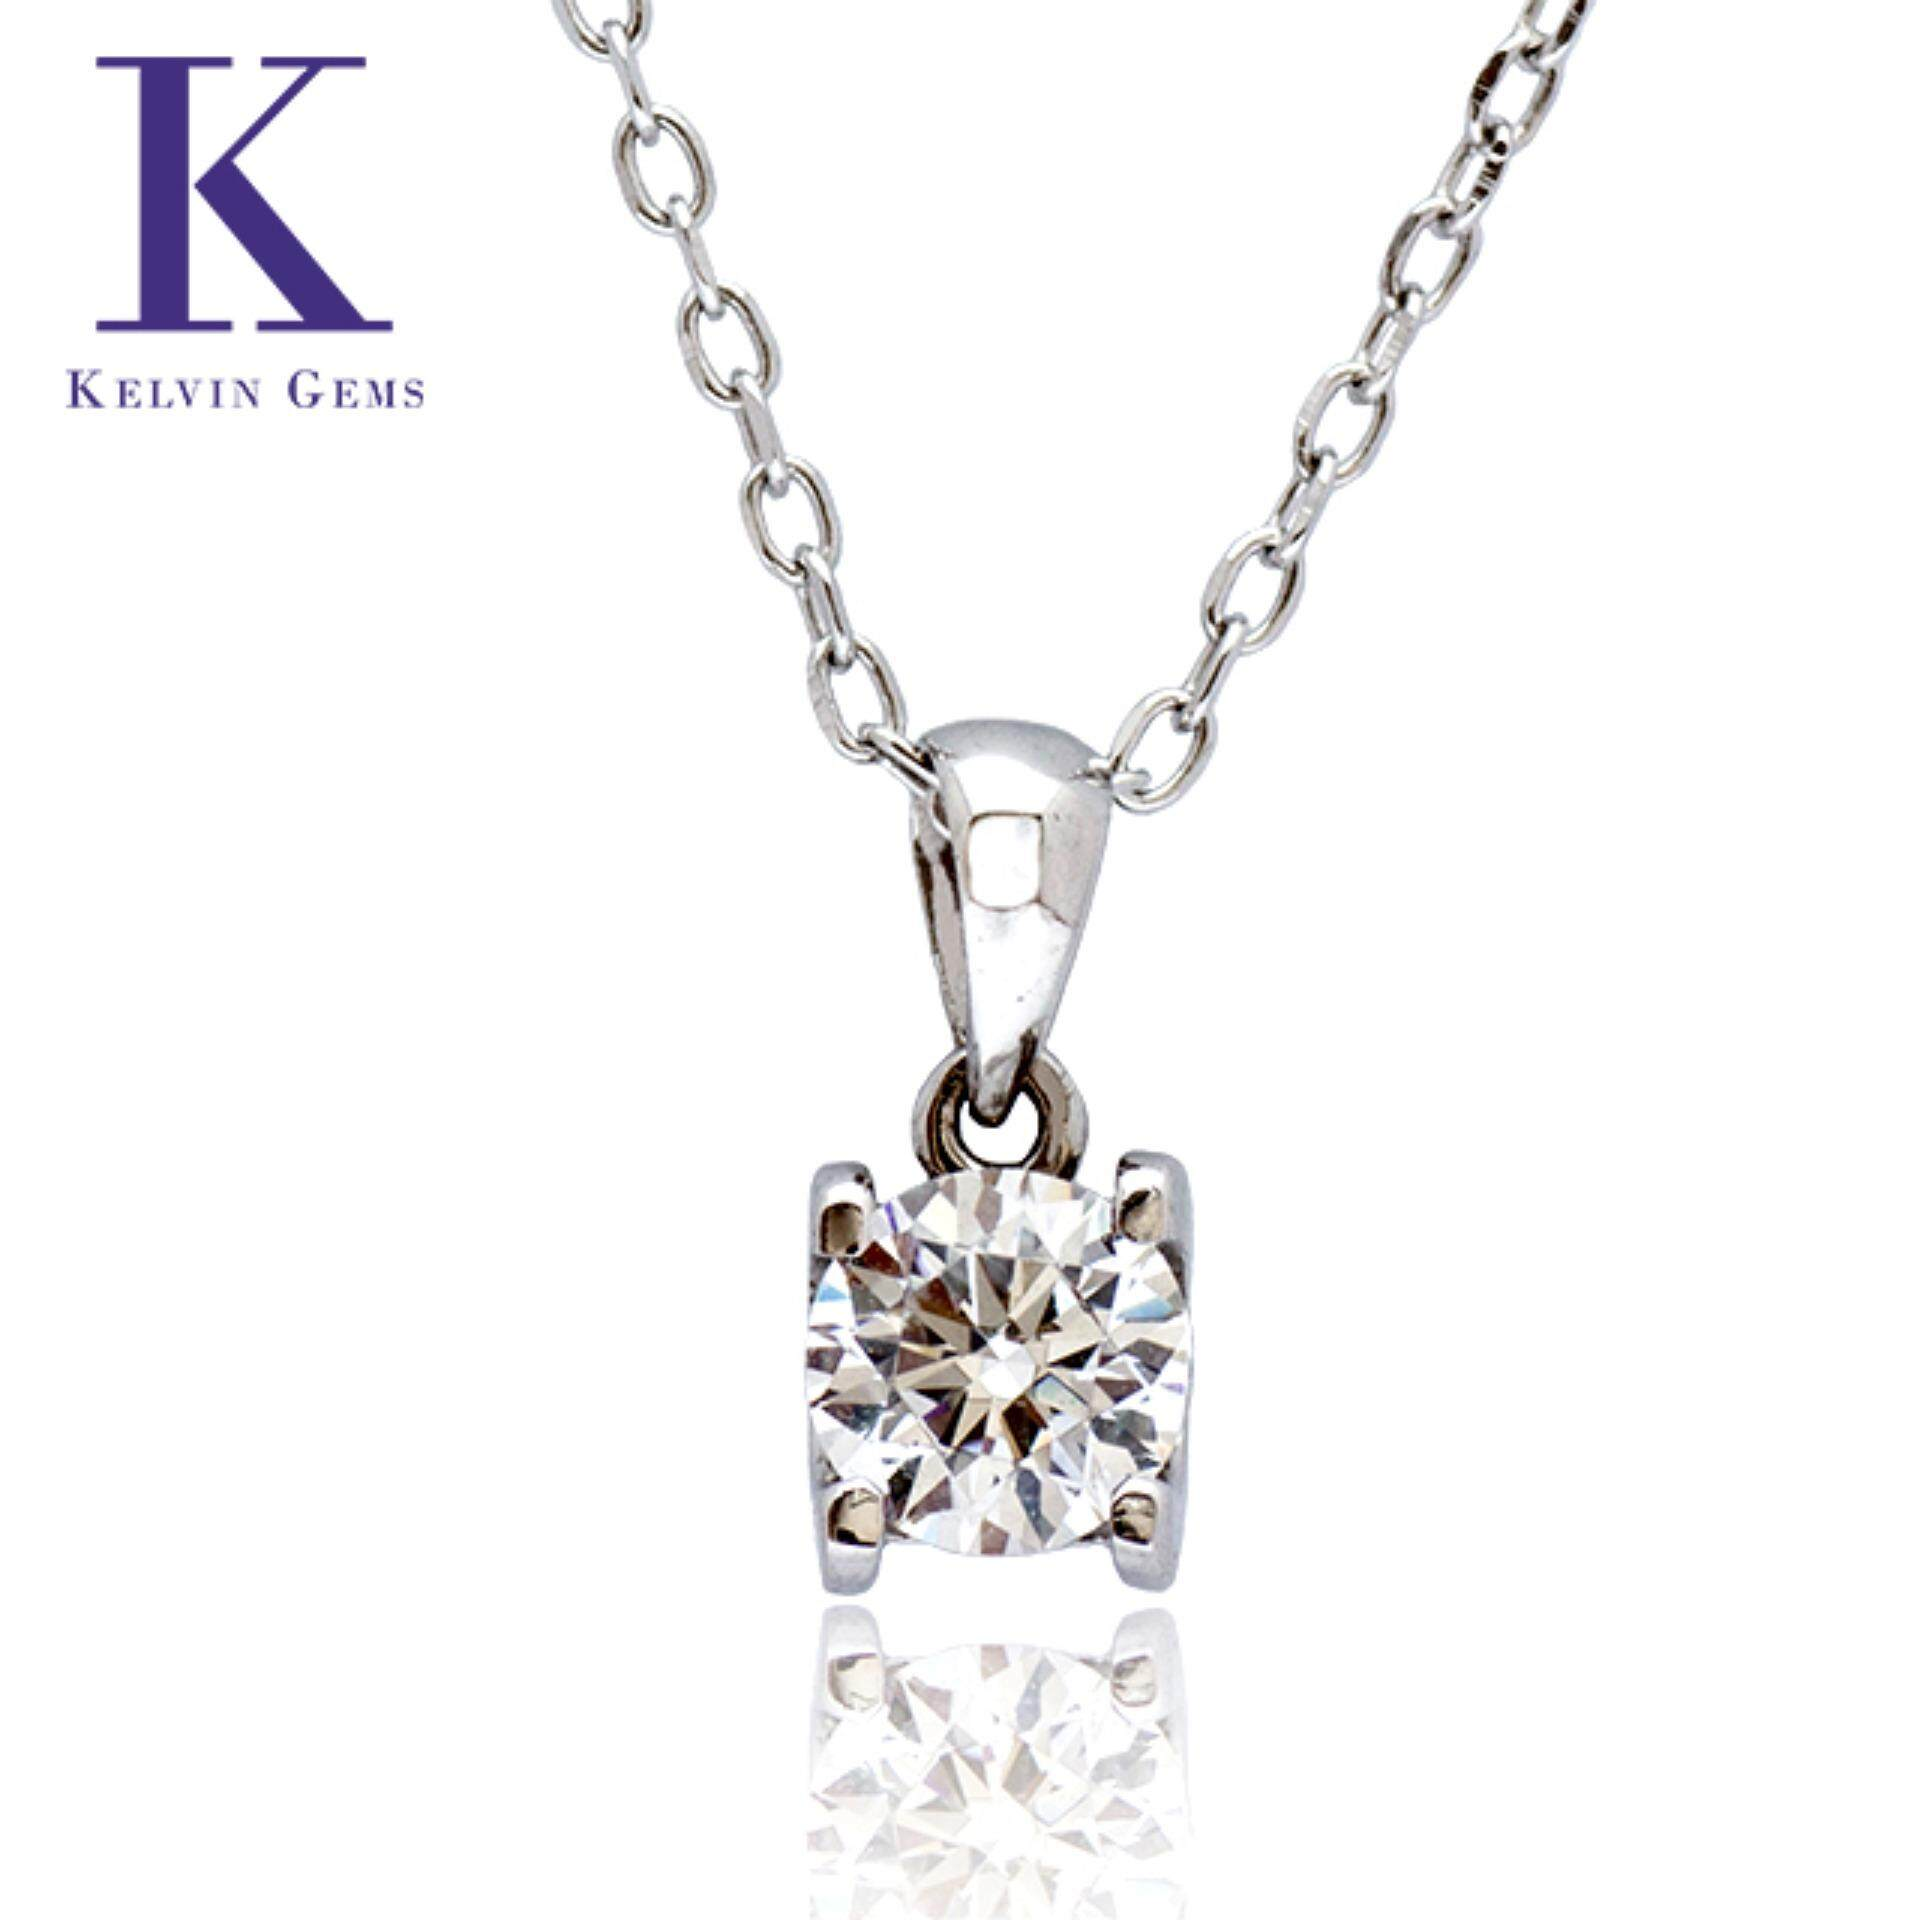 Kelvin Gems Premium Solitaire Necklace Made With Austrian Zirconia In 925 Sterling With 18K White Gold Plated